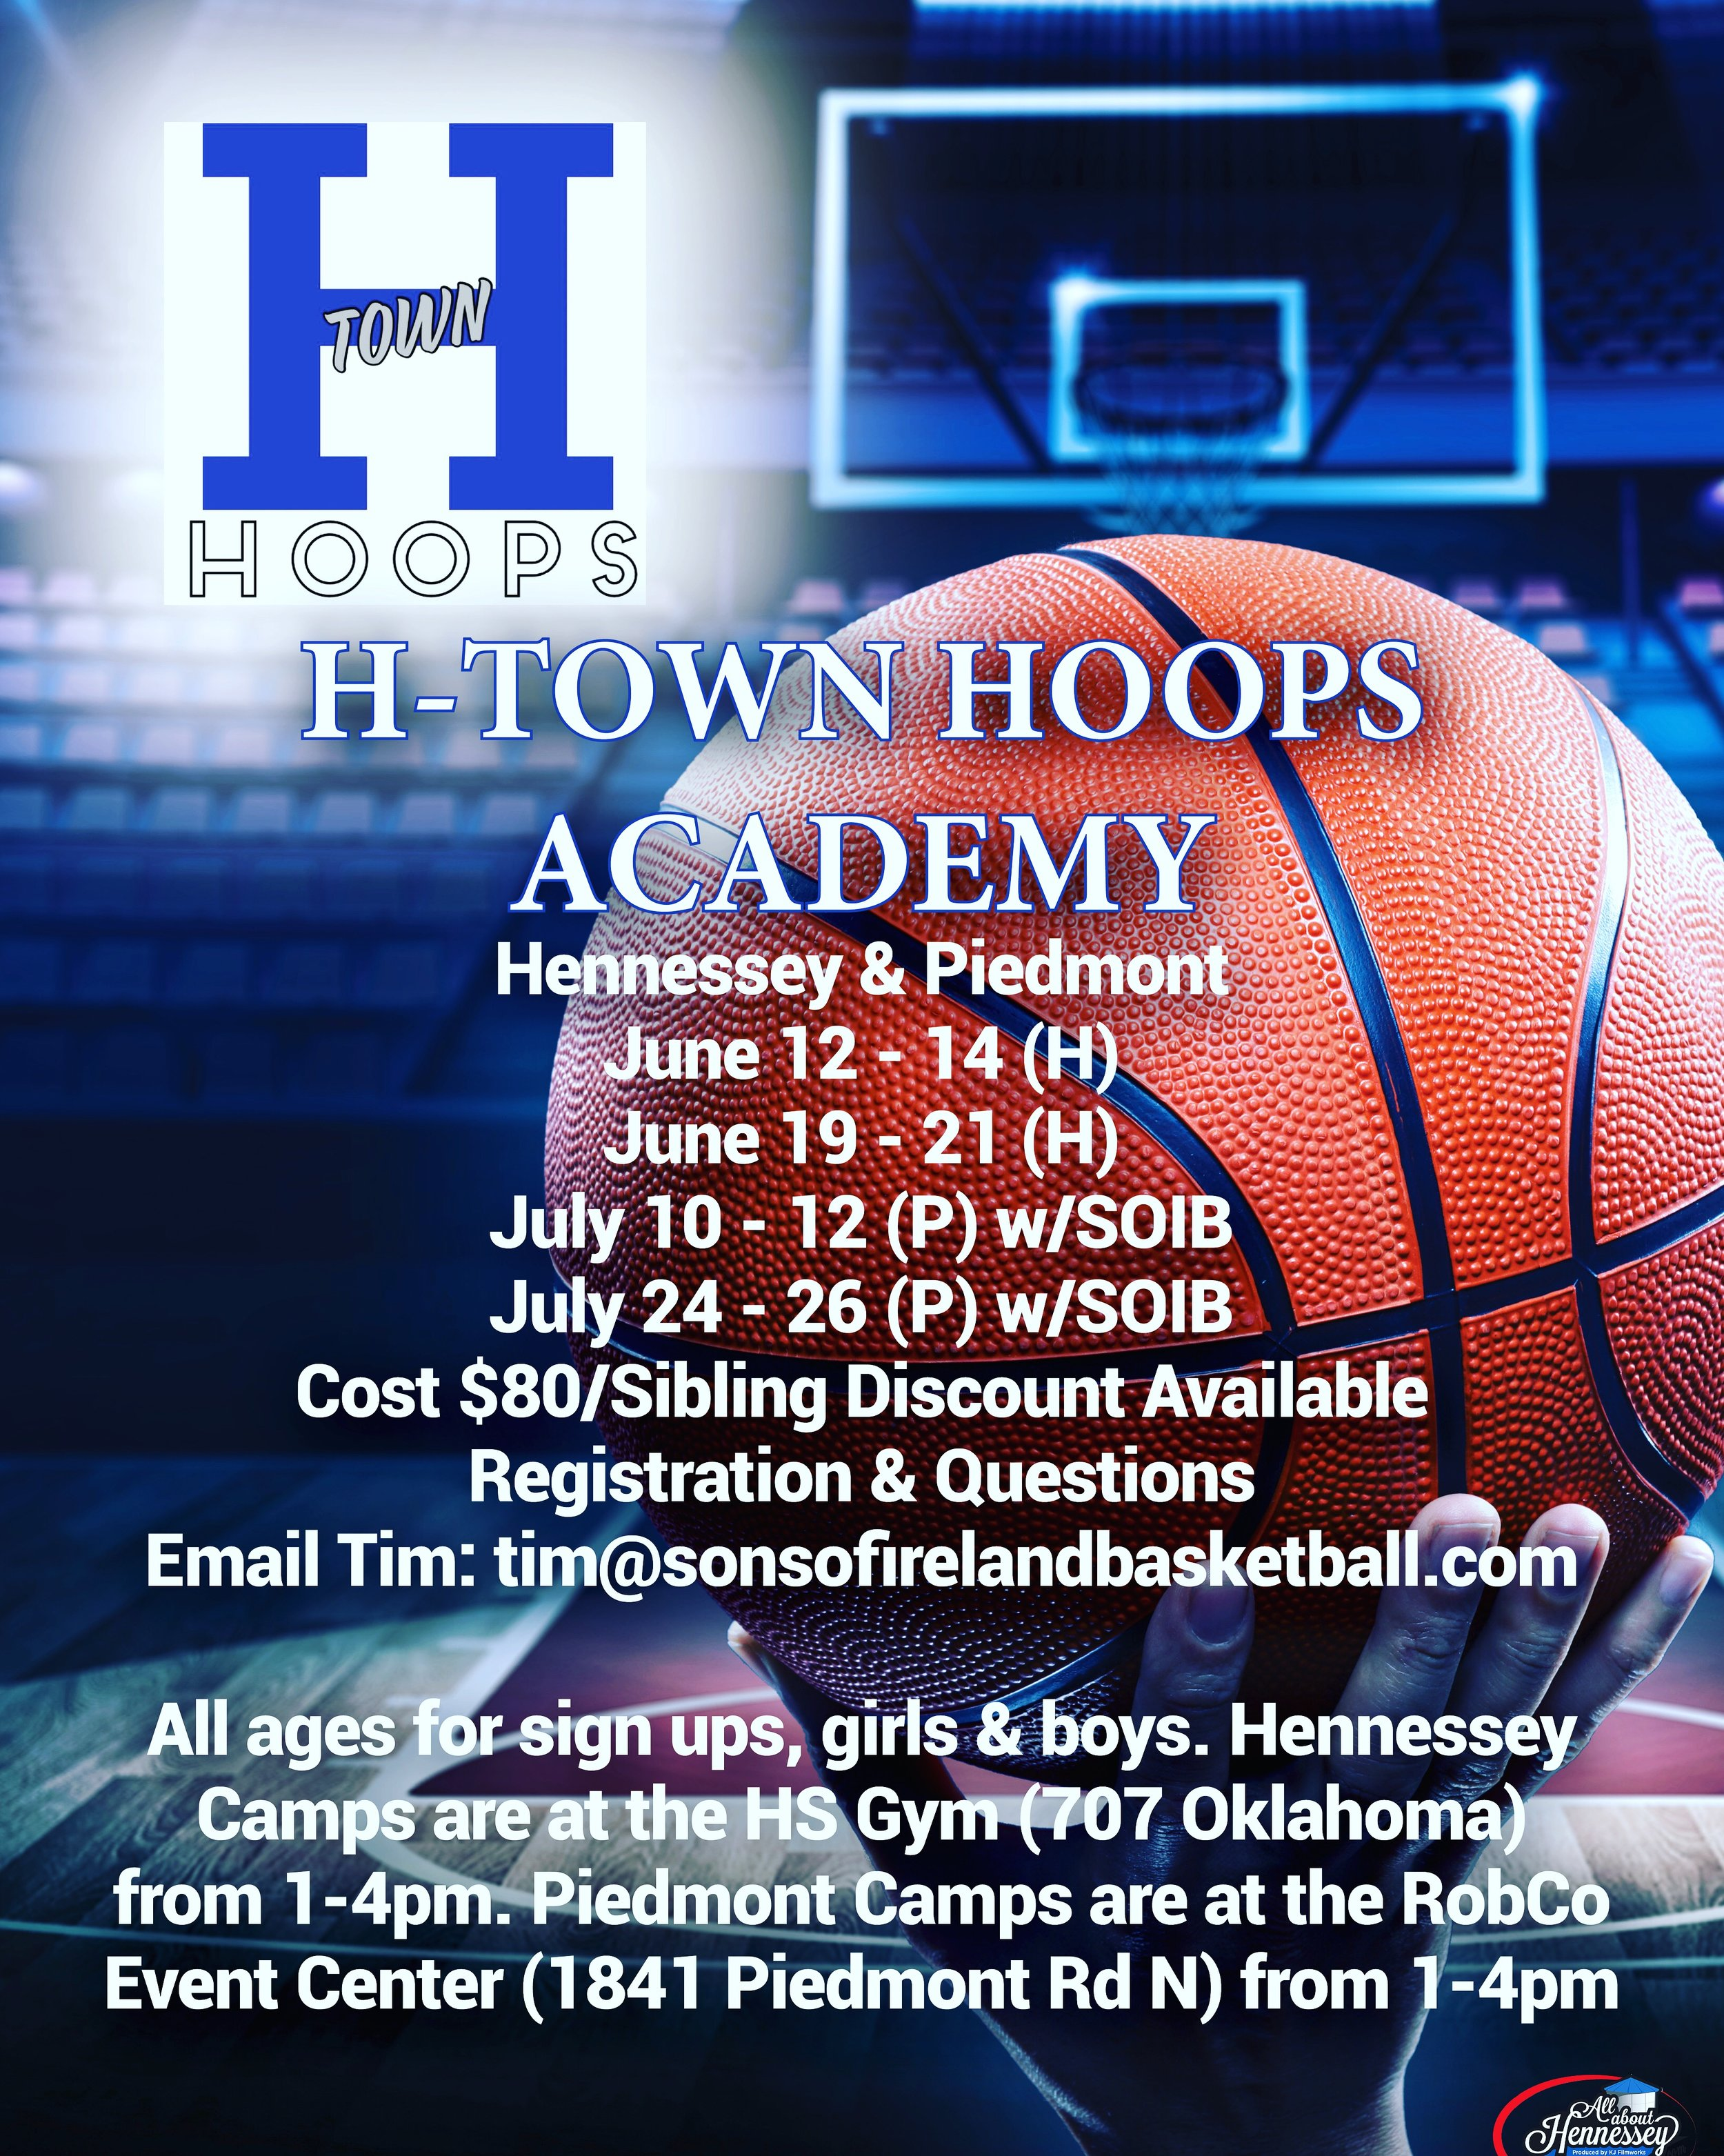 H-Town Hoops Academy